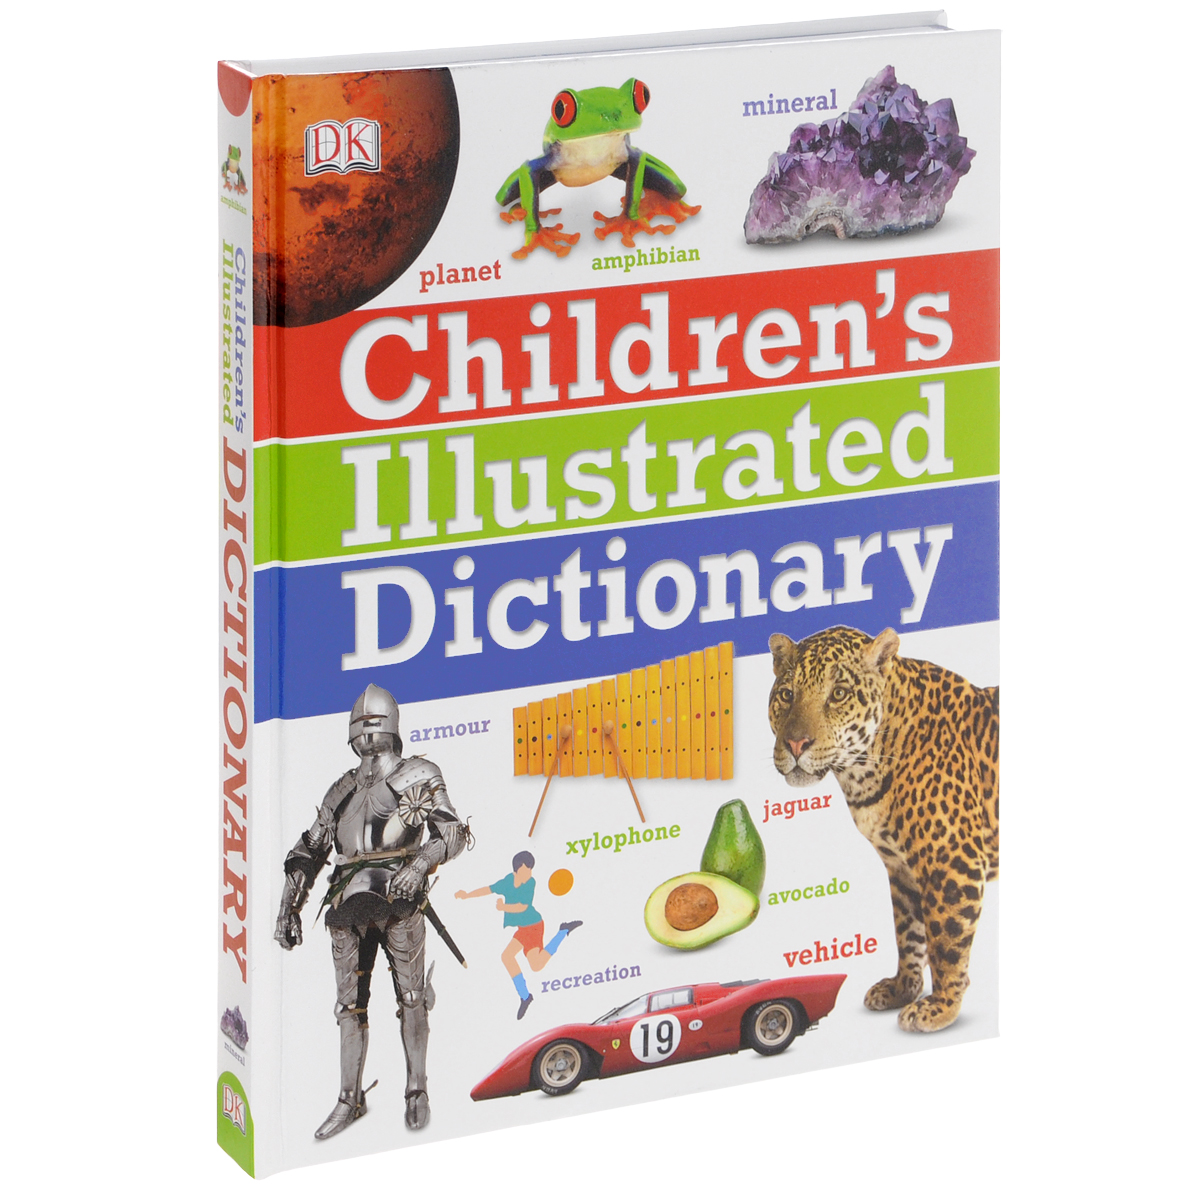 Children's Illustrated Dictionary dictionary of information